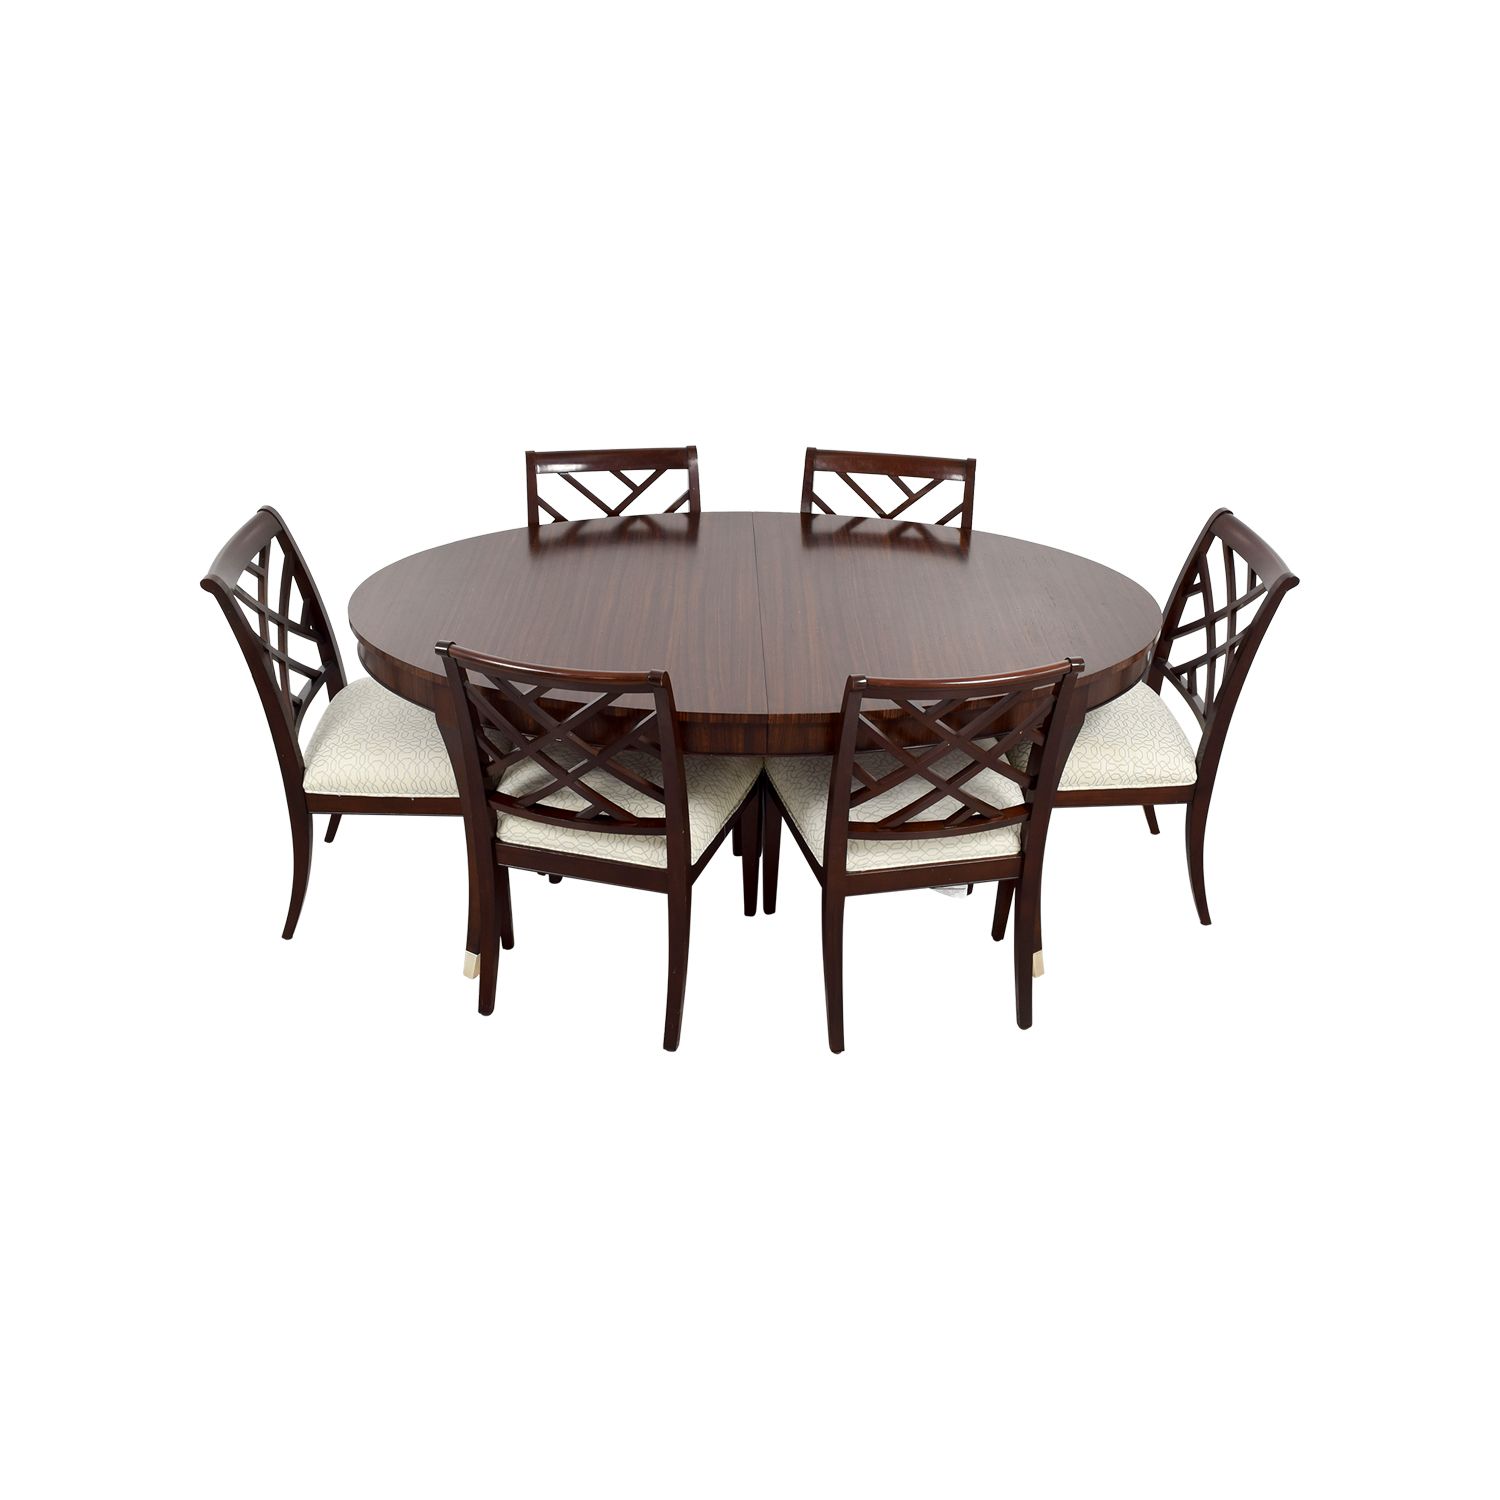 ... Ethan Allen Ethan Allen Hathaway Dining Set Used ...